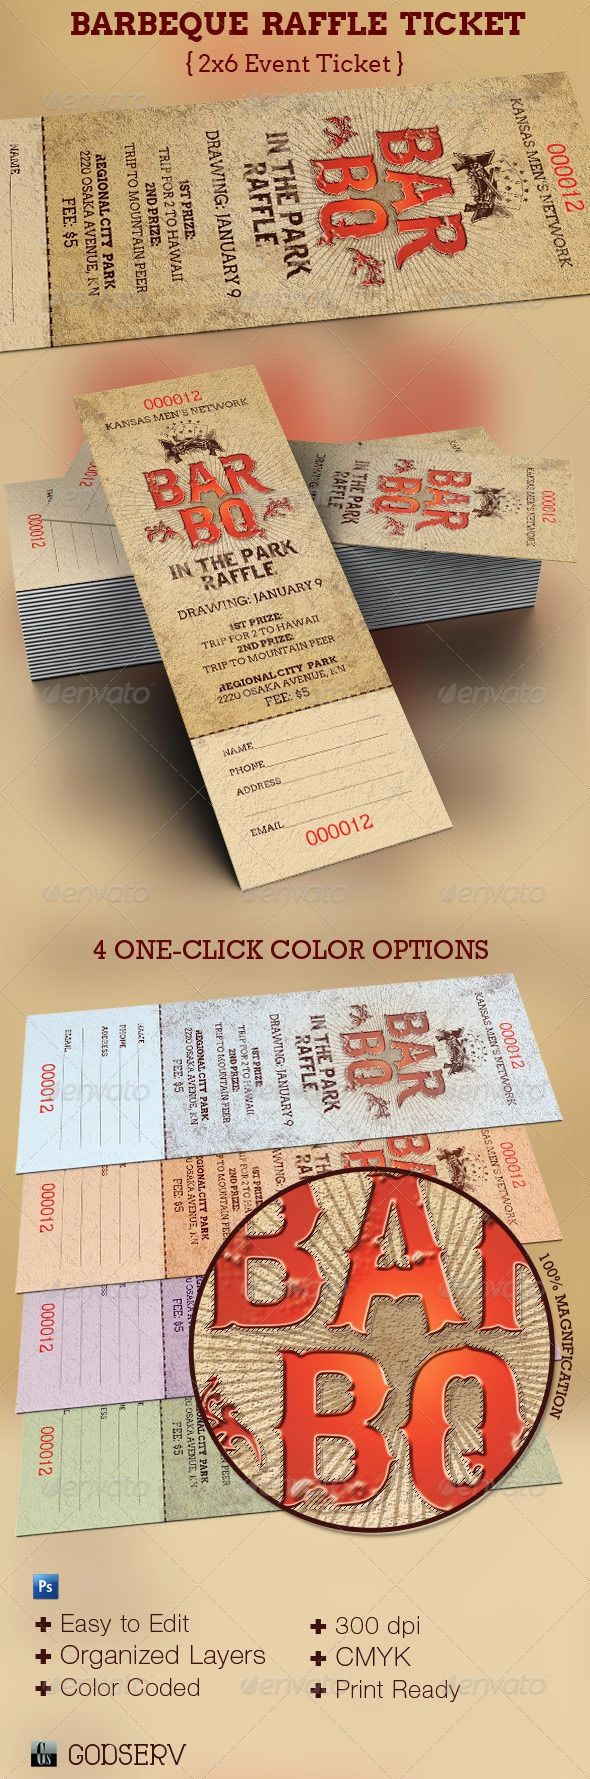 Raffle Ticket Samples for Fundraisers Awesome 85 Best Images About Raffle Ticket Templates & Ideas On